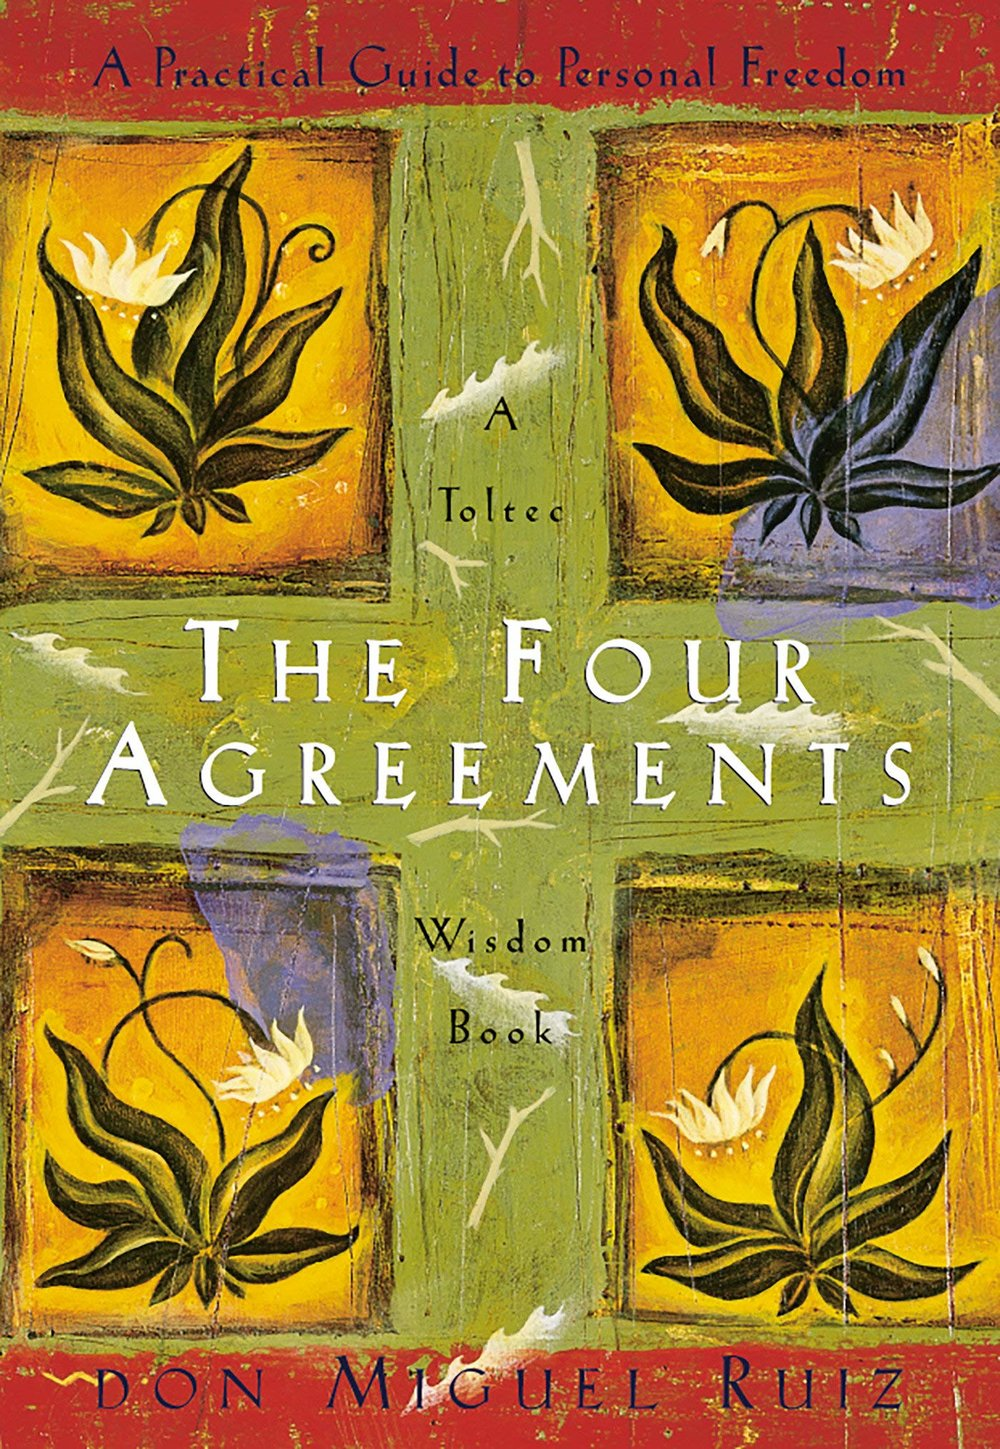 The Four Agreements A Practical Guide to Personal Freedom (A Toltec Wisdom Book).jpg